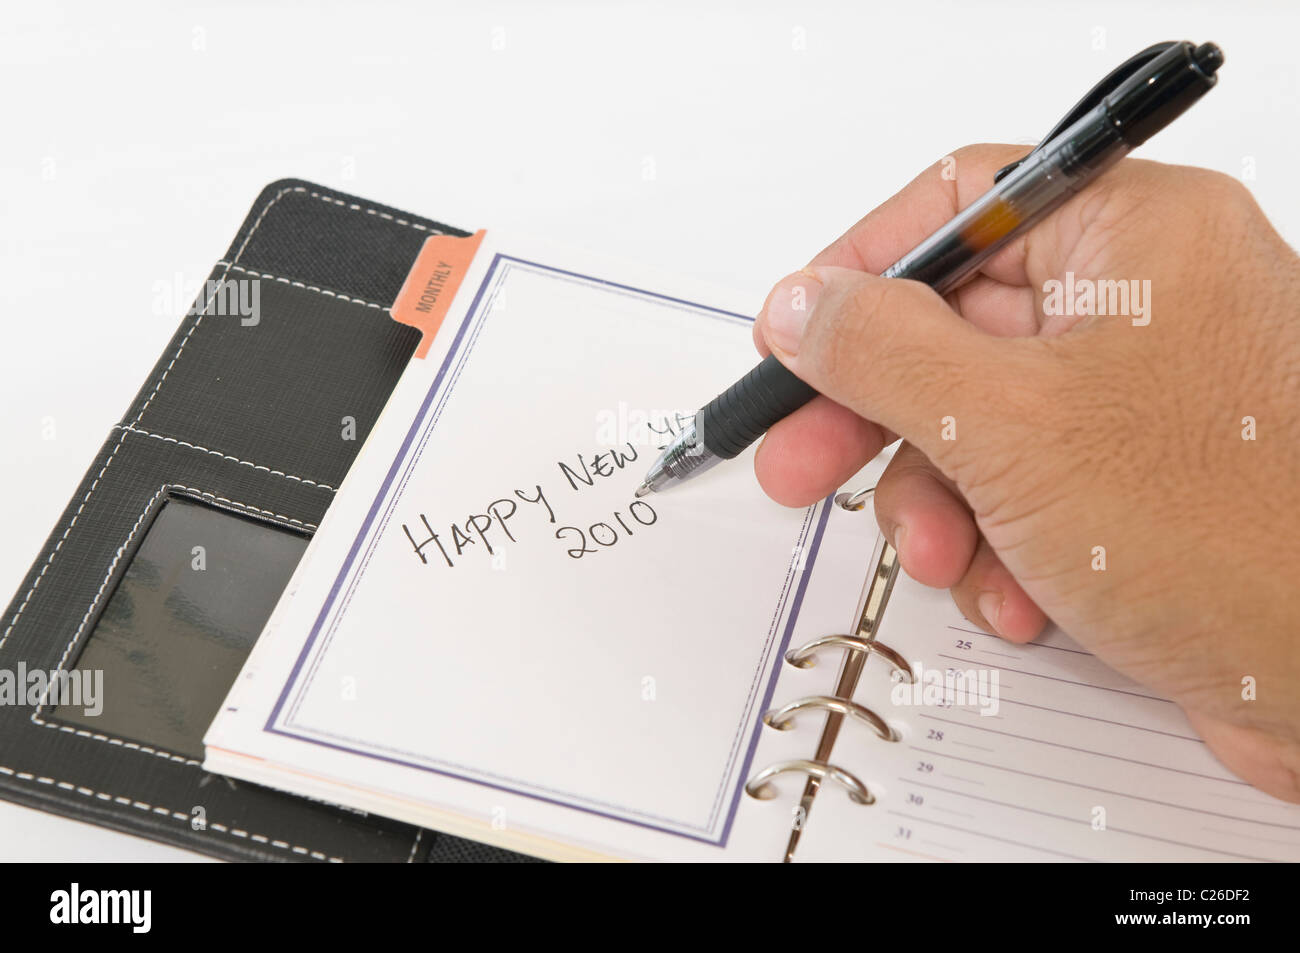 Hands holding a pen while writing Happy New Year - Stock Image